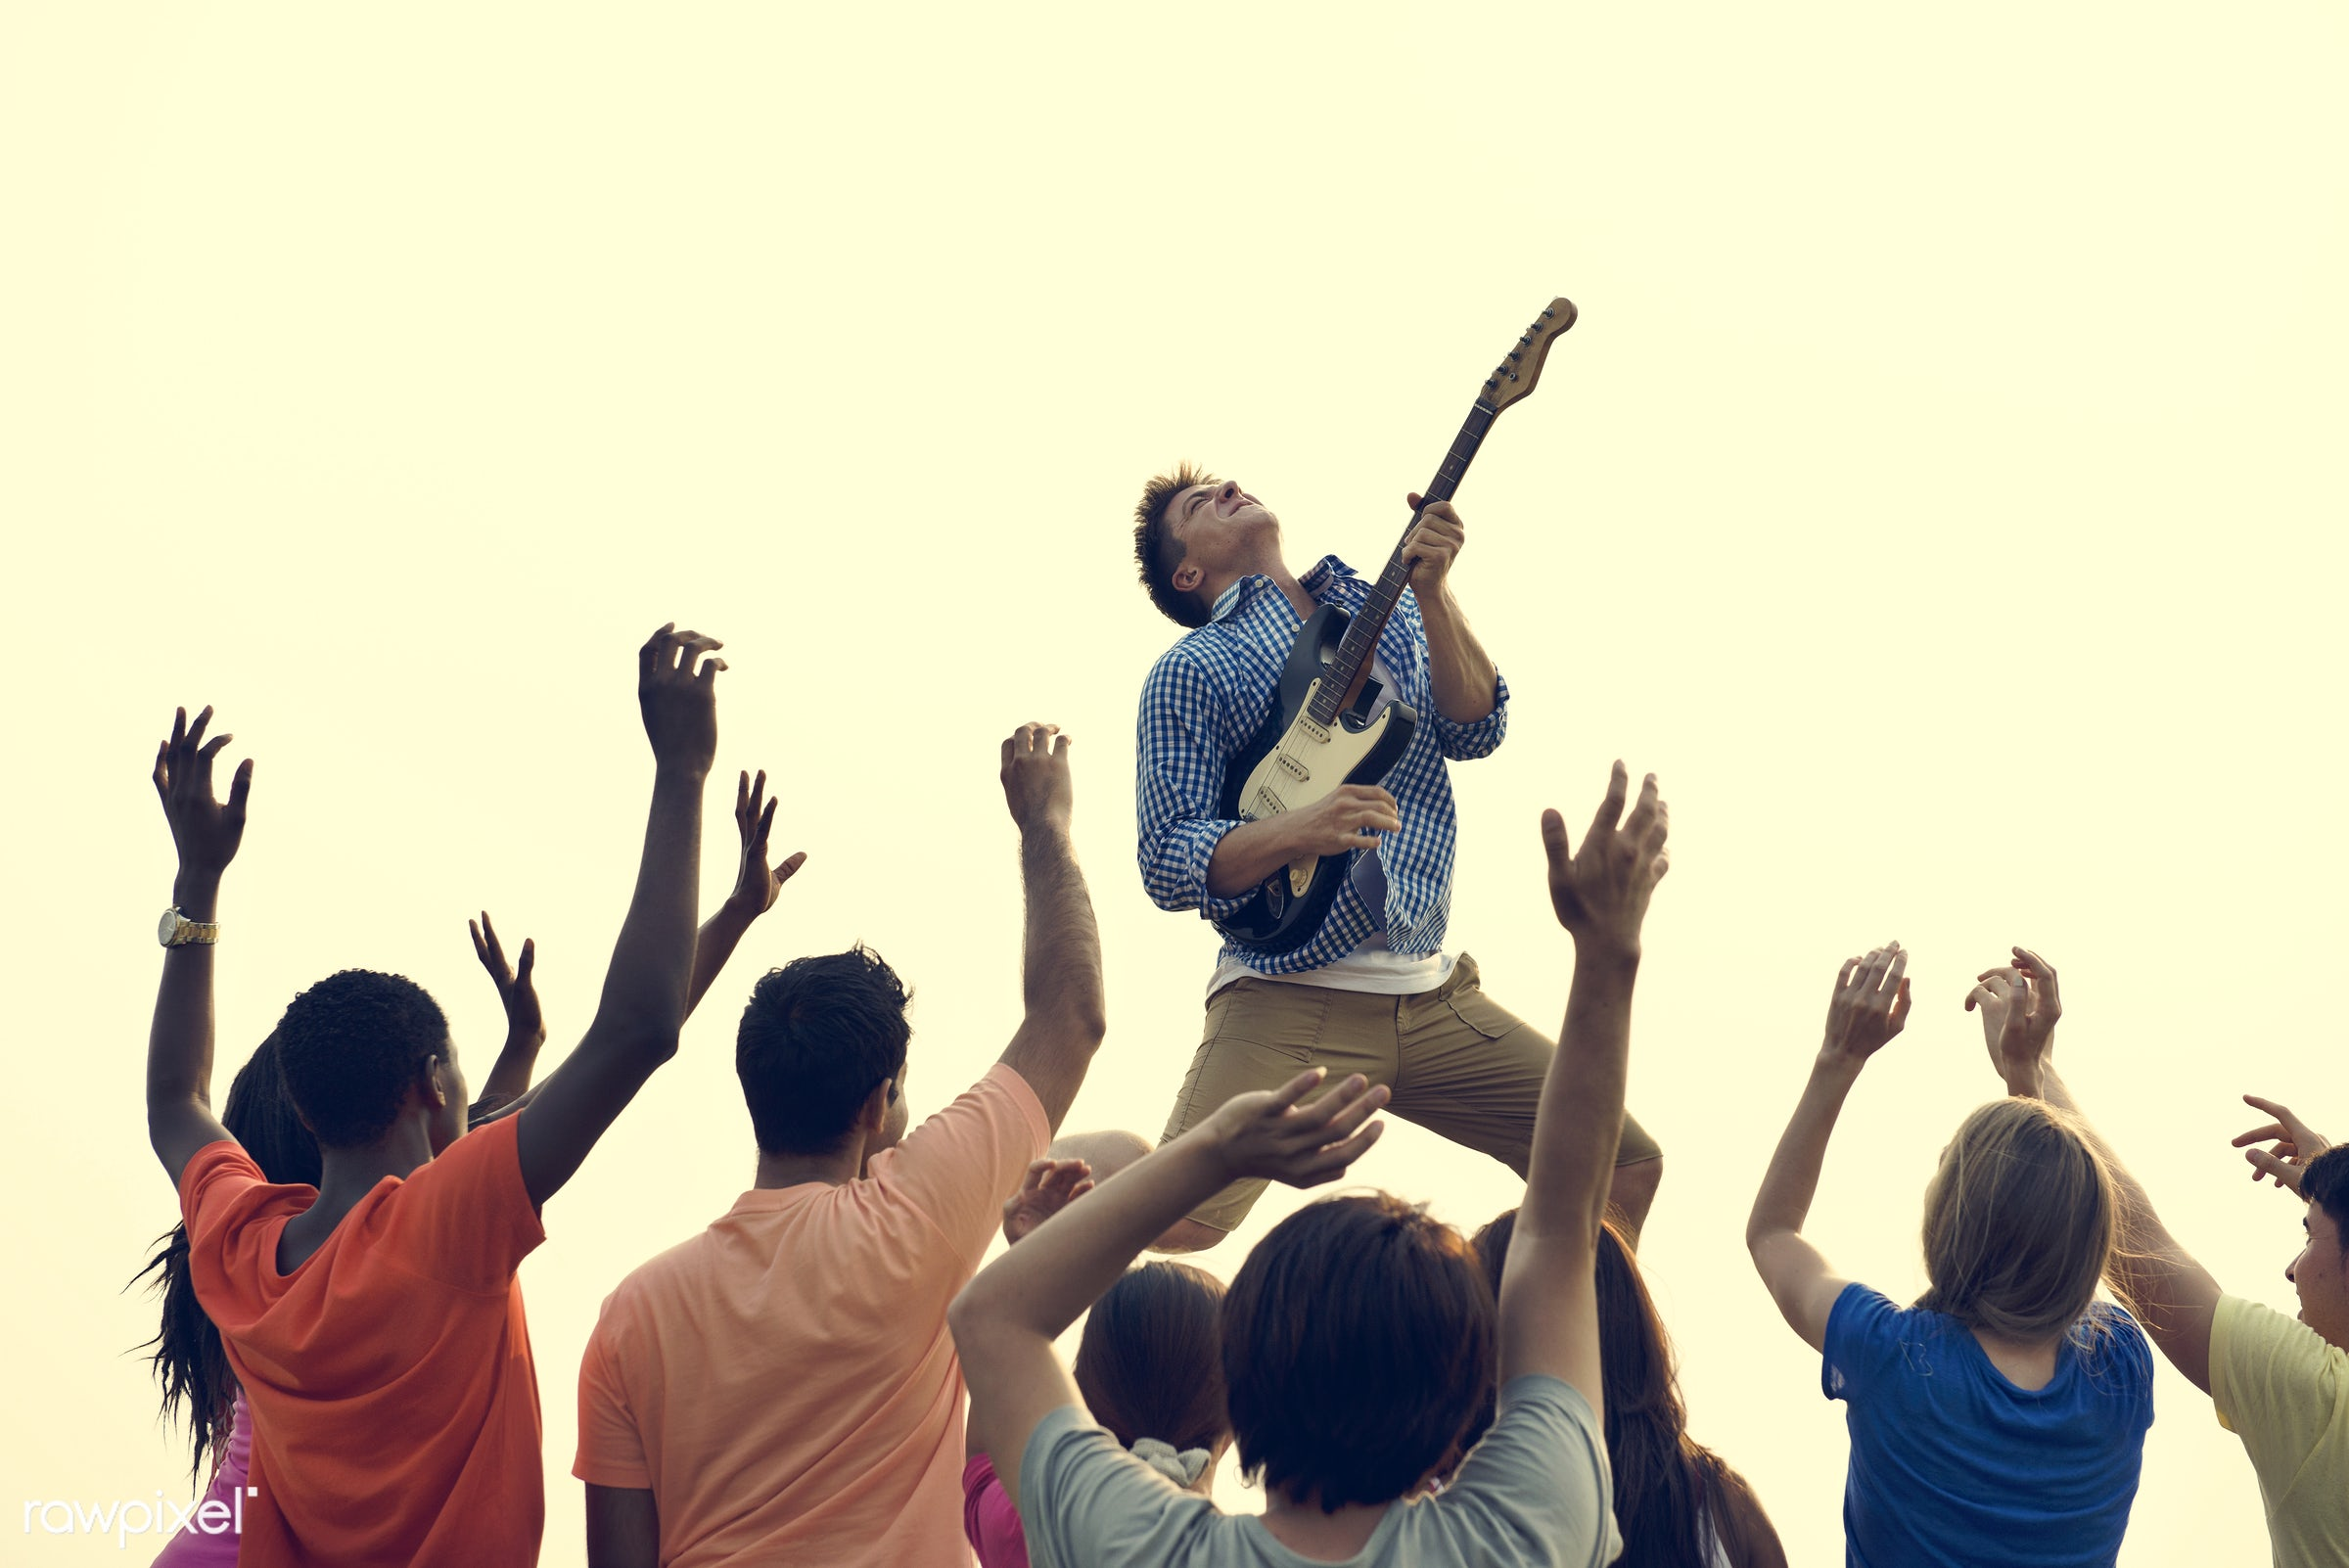 arms raised, casual, celebration, cheerful, circle of friends, clique, community, concert, dawn, day, day break, enjoy,...